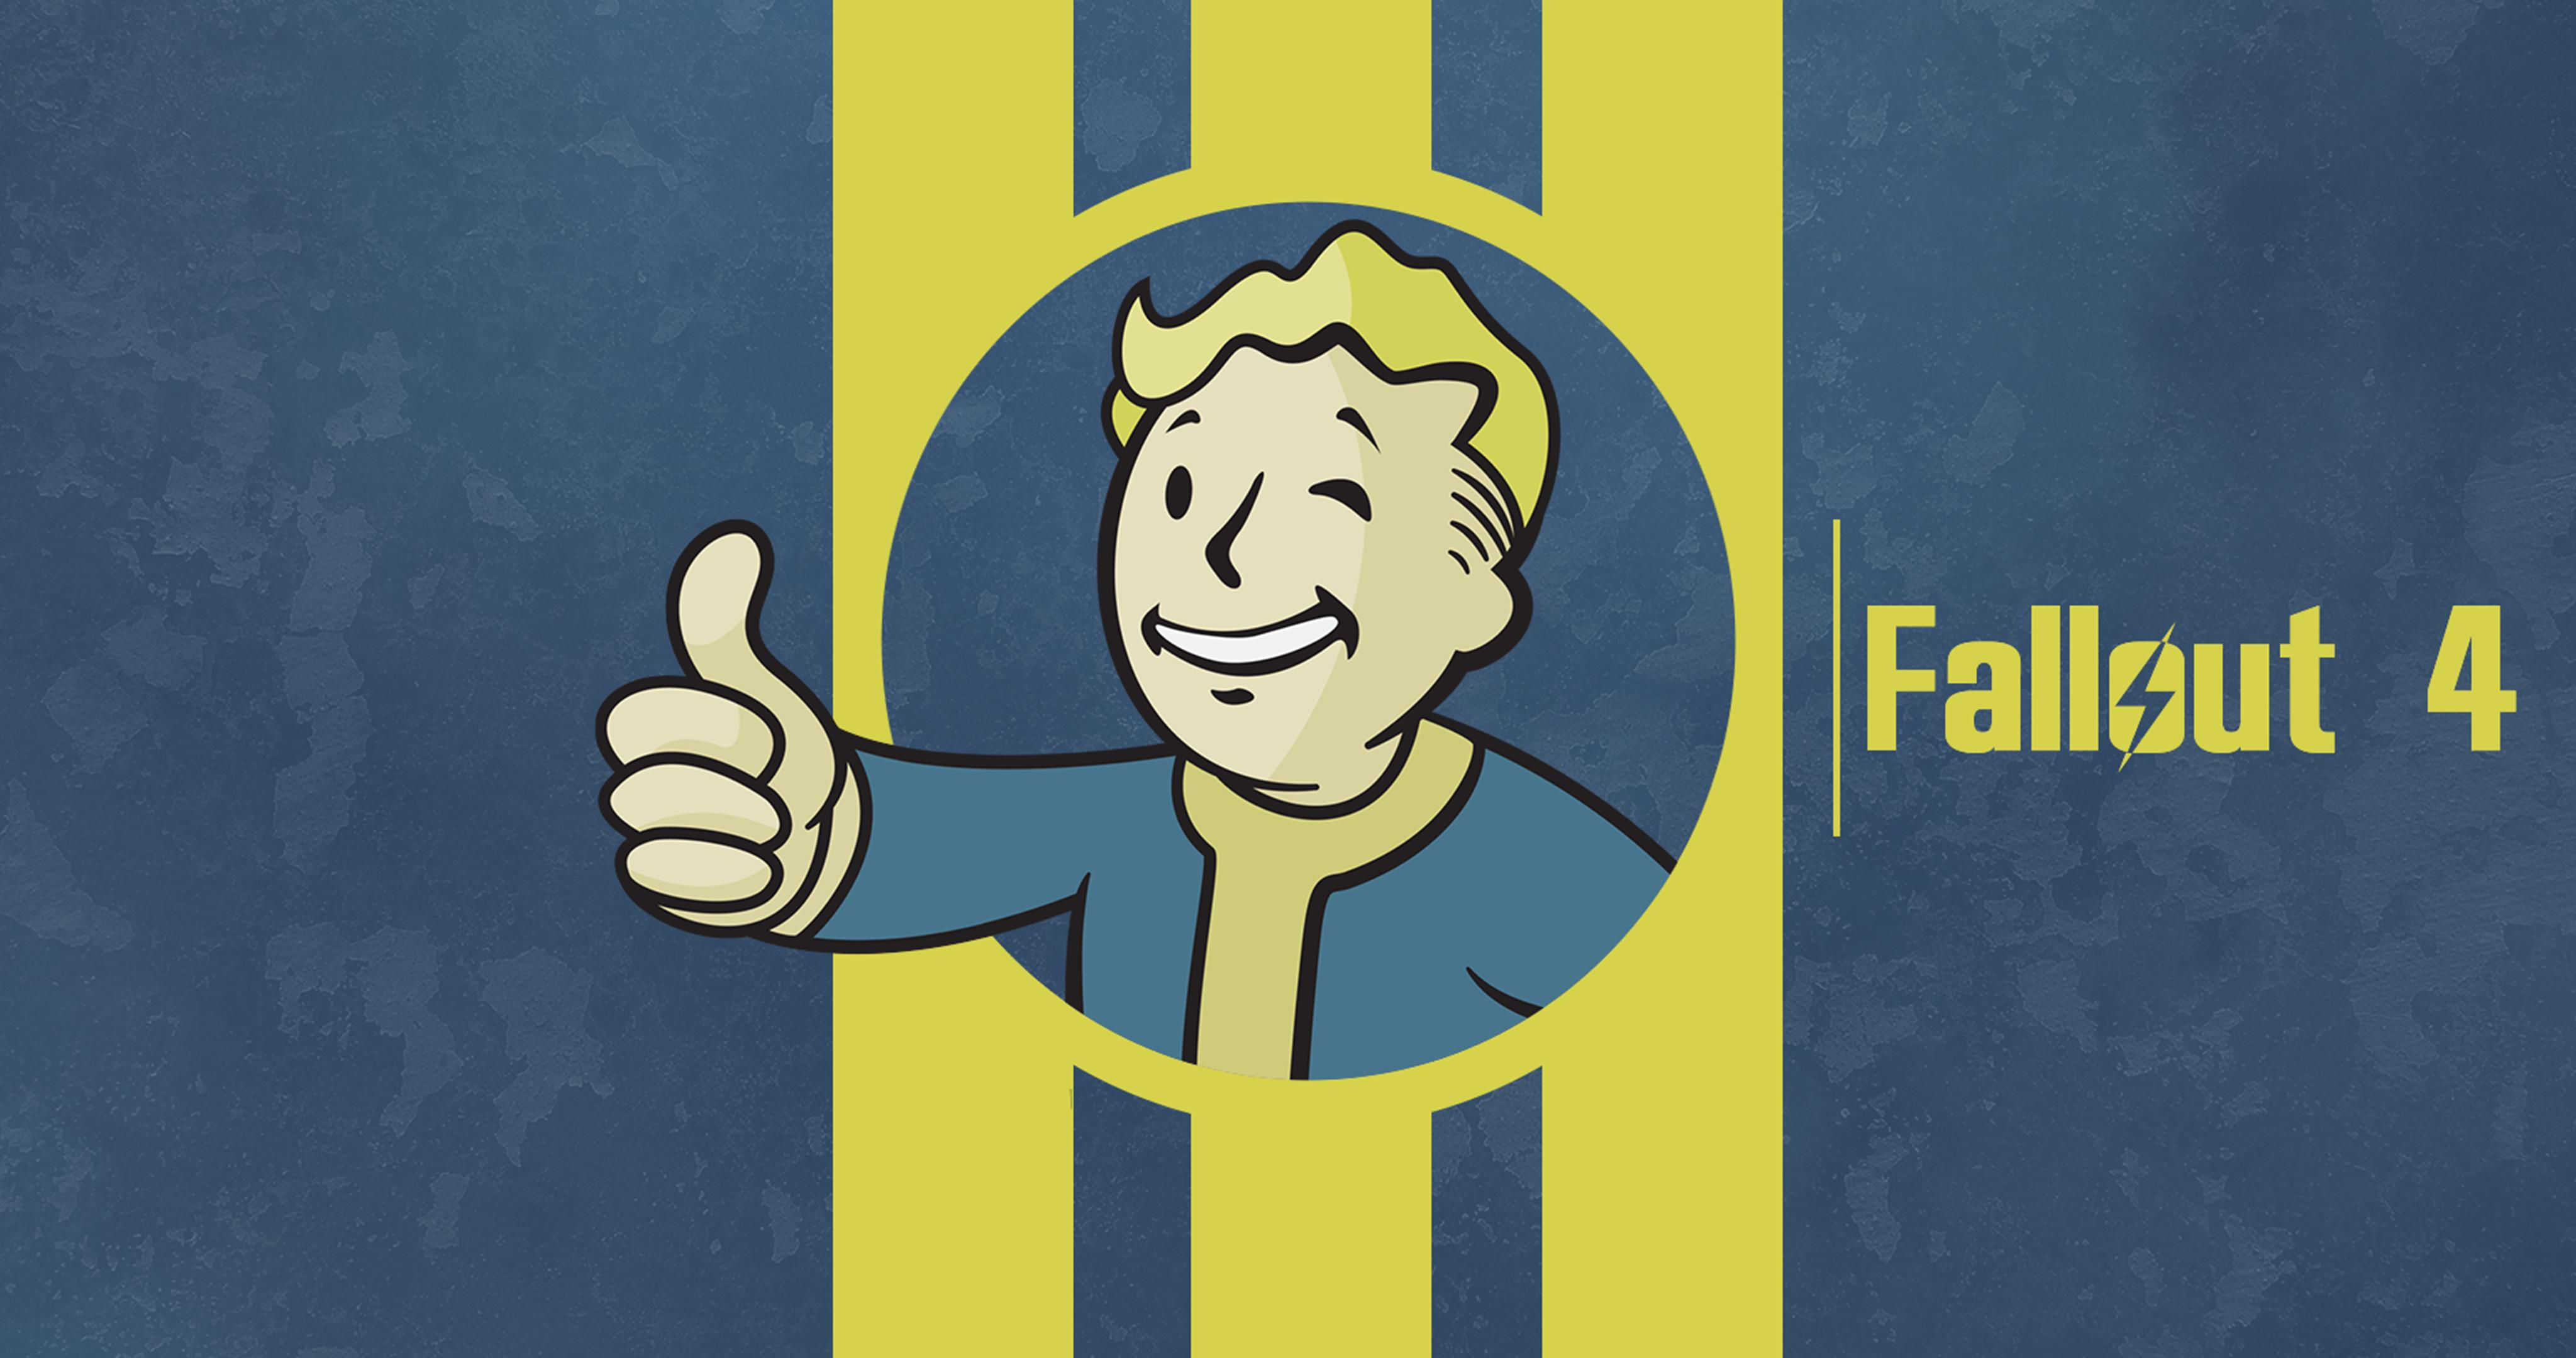 Fallout vault boy clipart picture black and white library Fallout vault boy clipart hd - ClipartFest picture black and white library